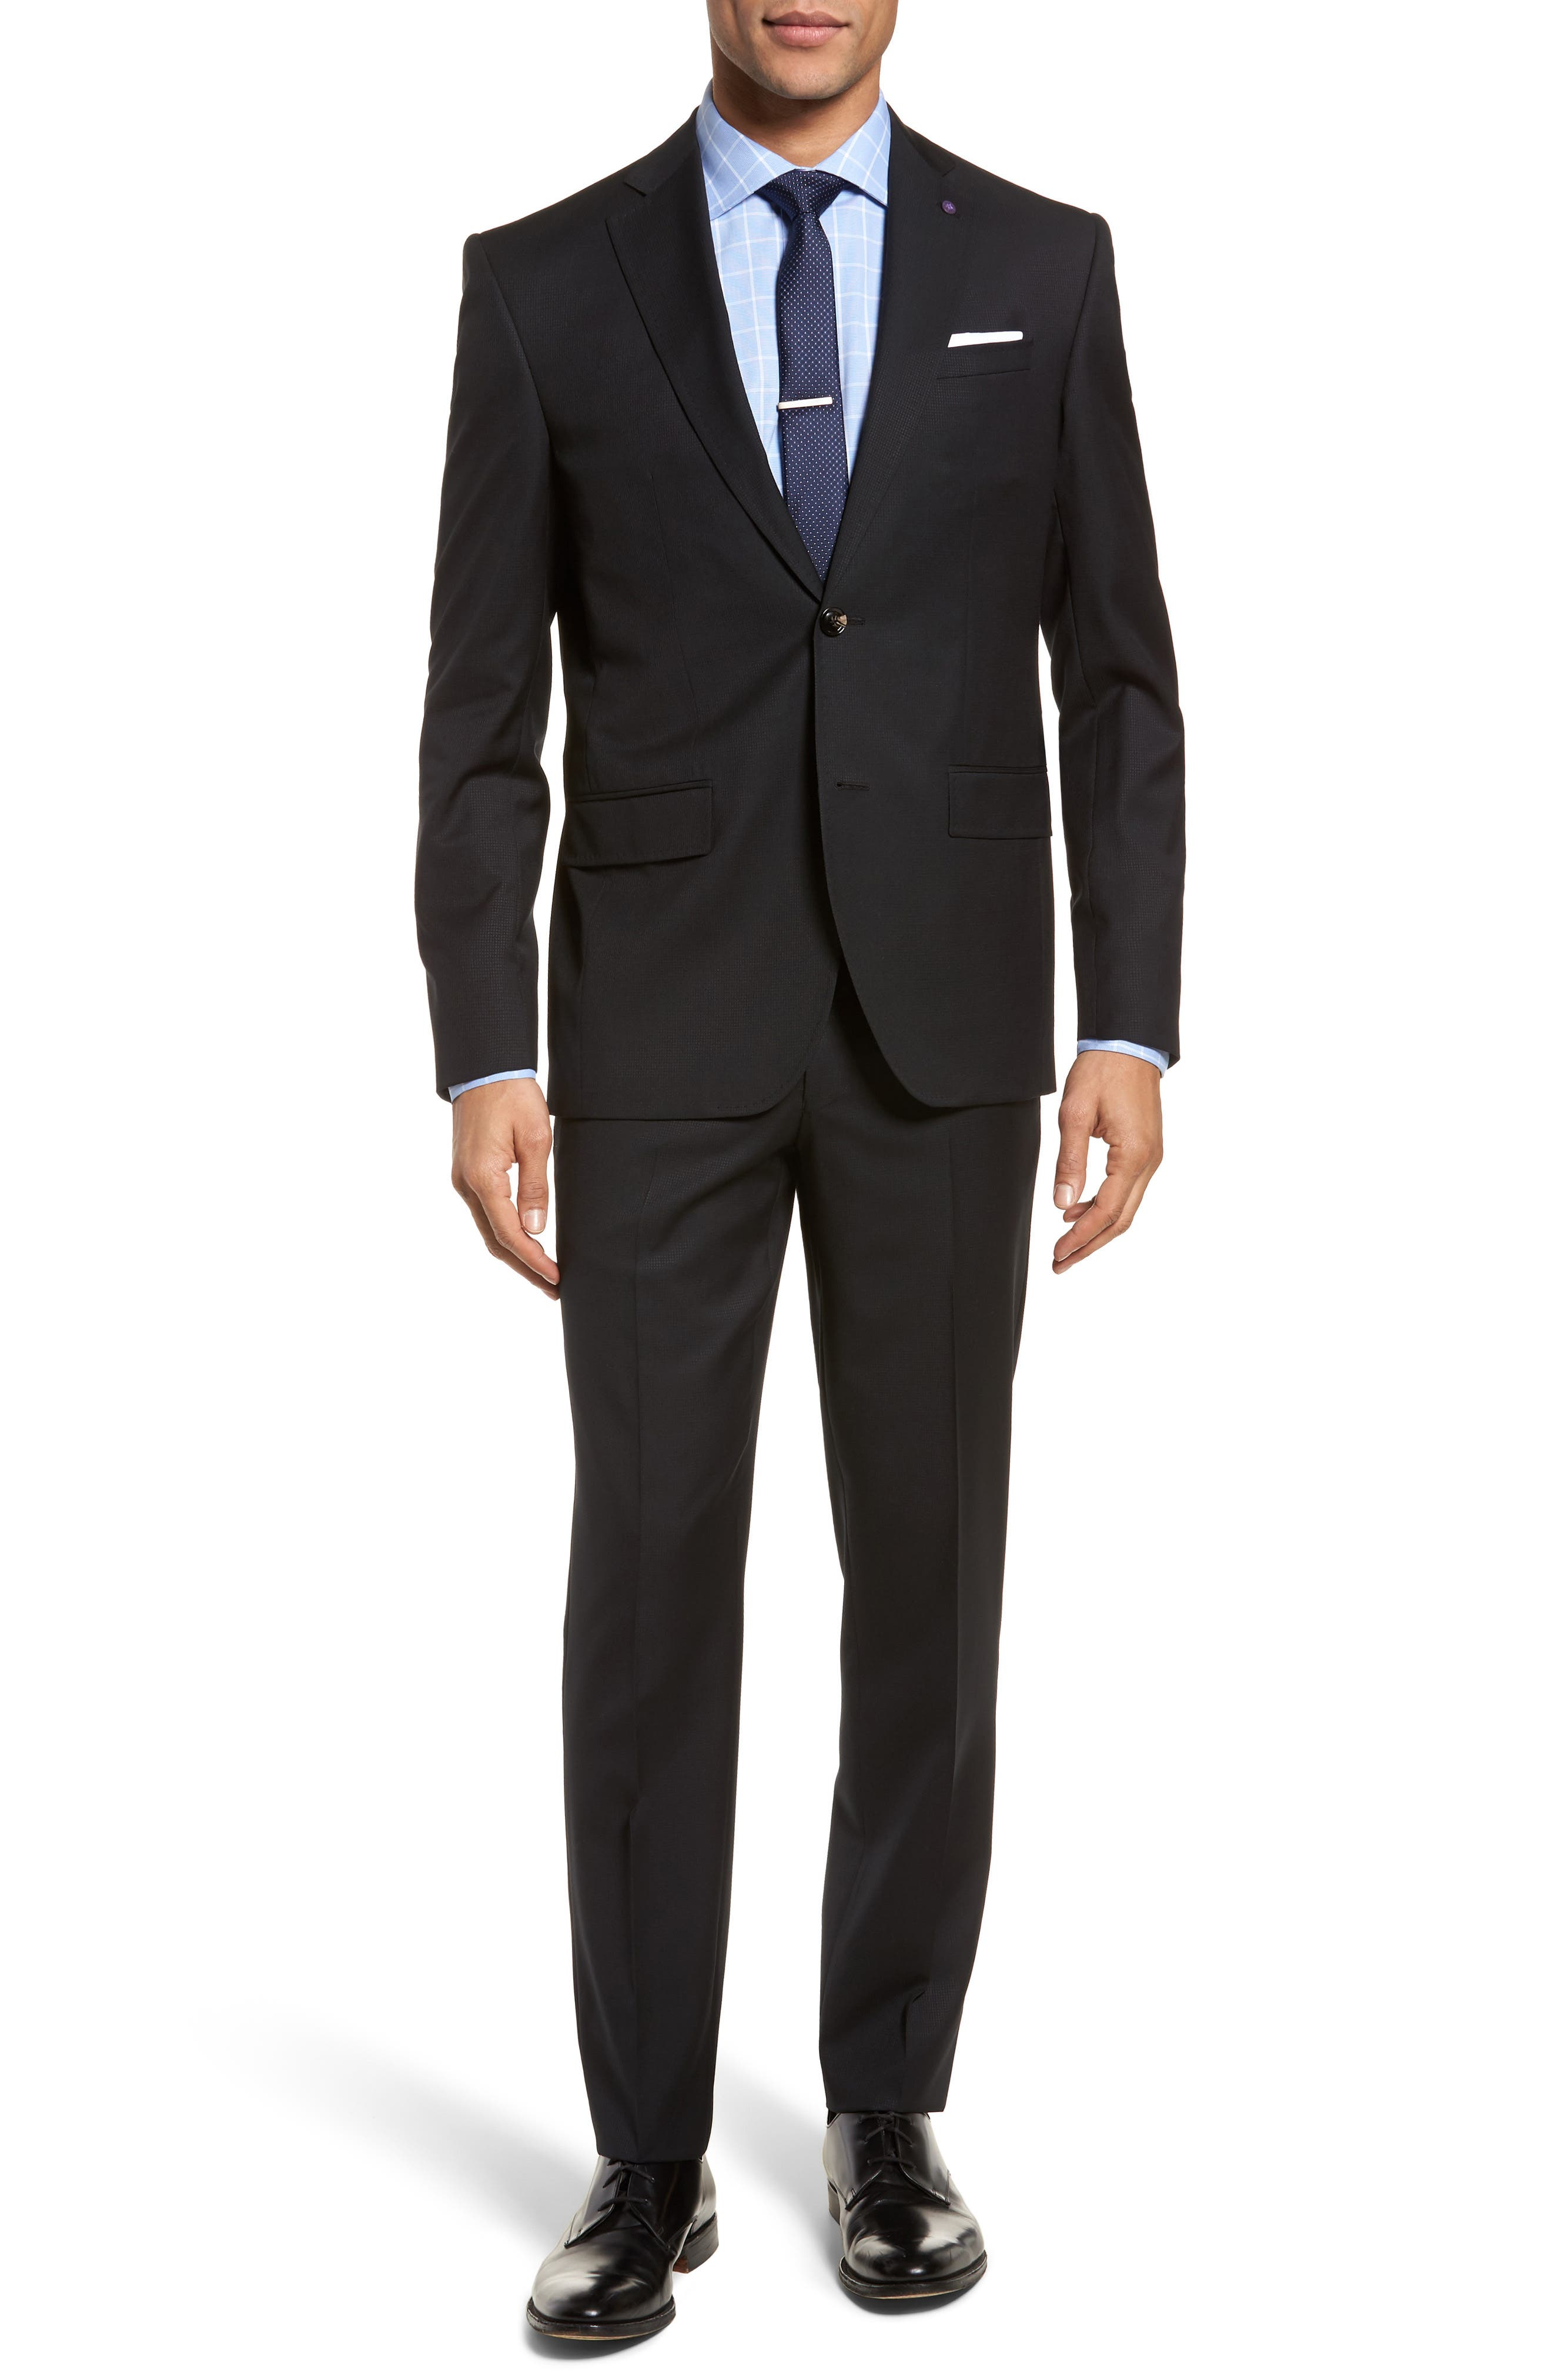 Roger Extra Slim Fit Solid Wool Suit,                         Main,                         color, Black